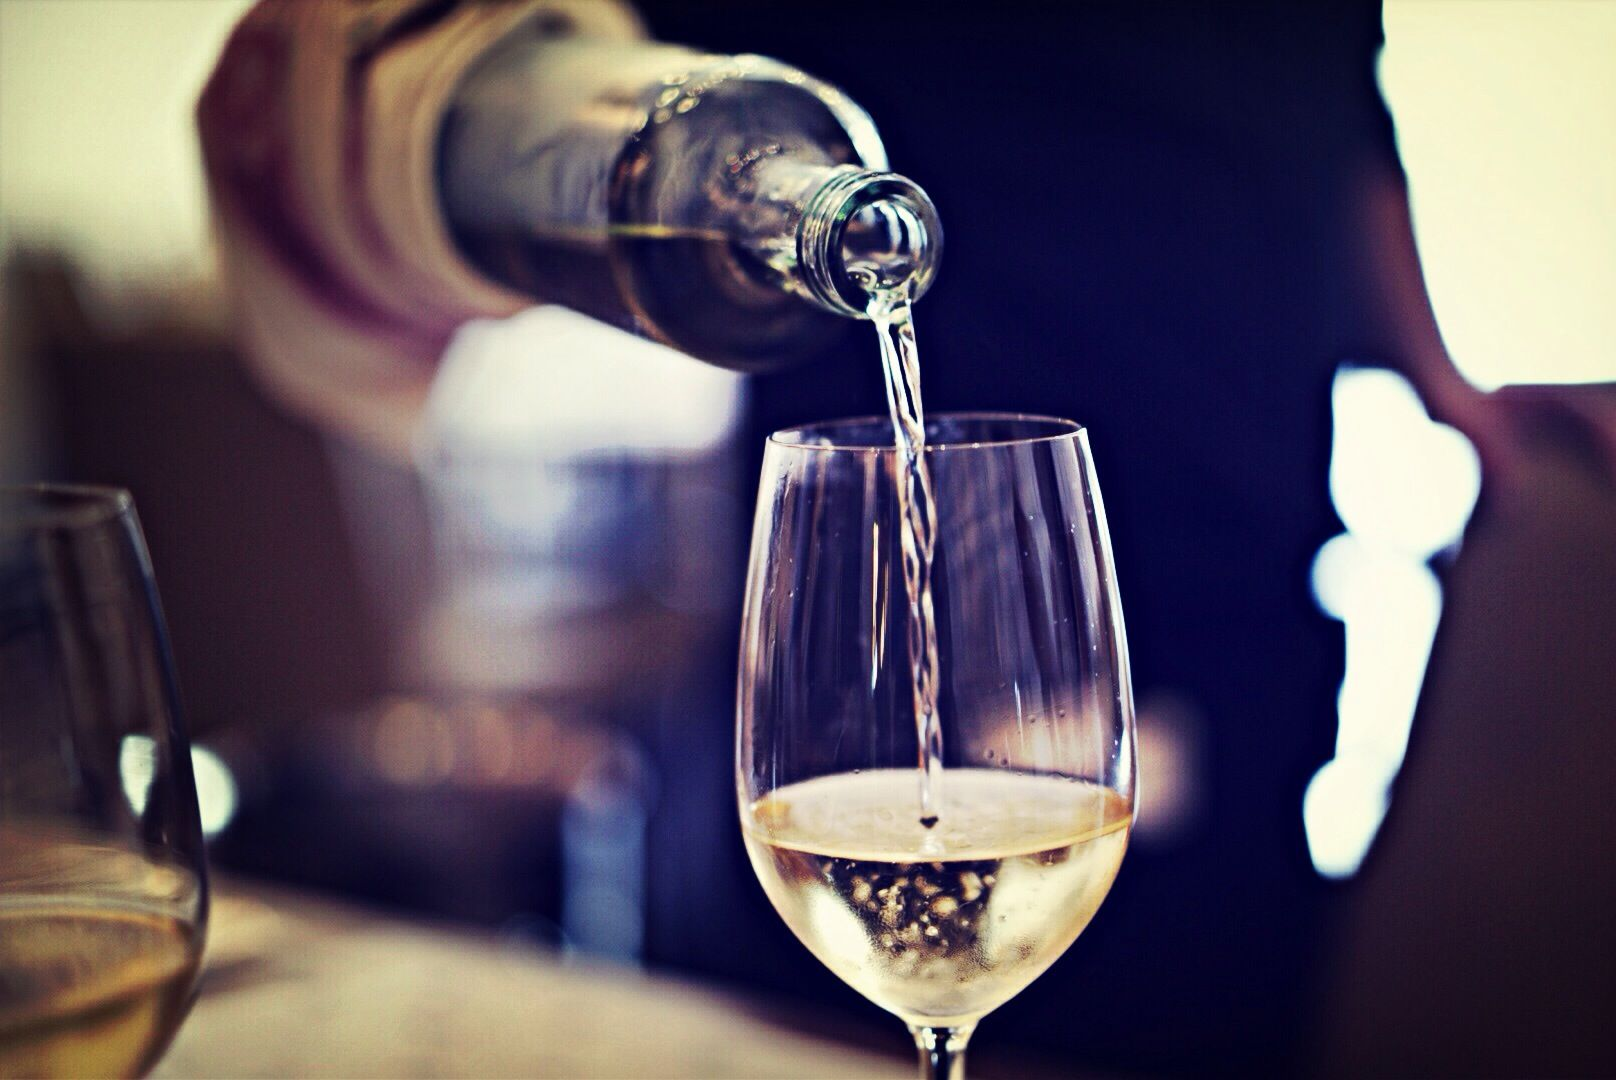 daily glass of wine bad for health